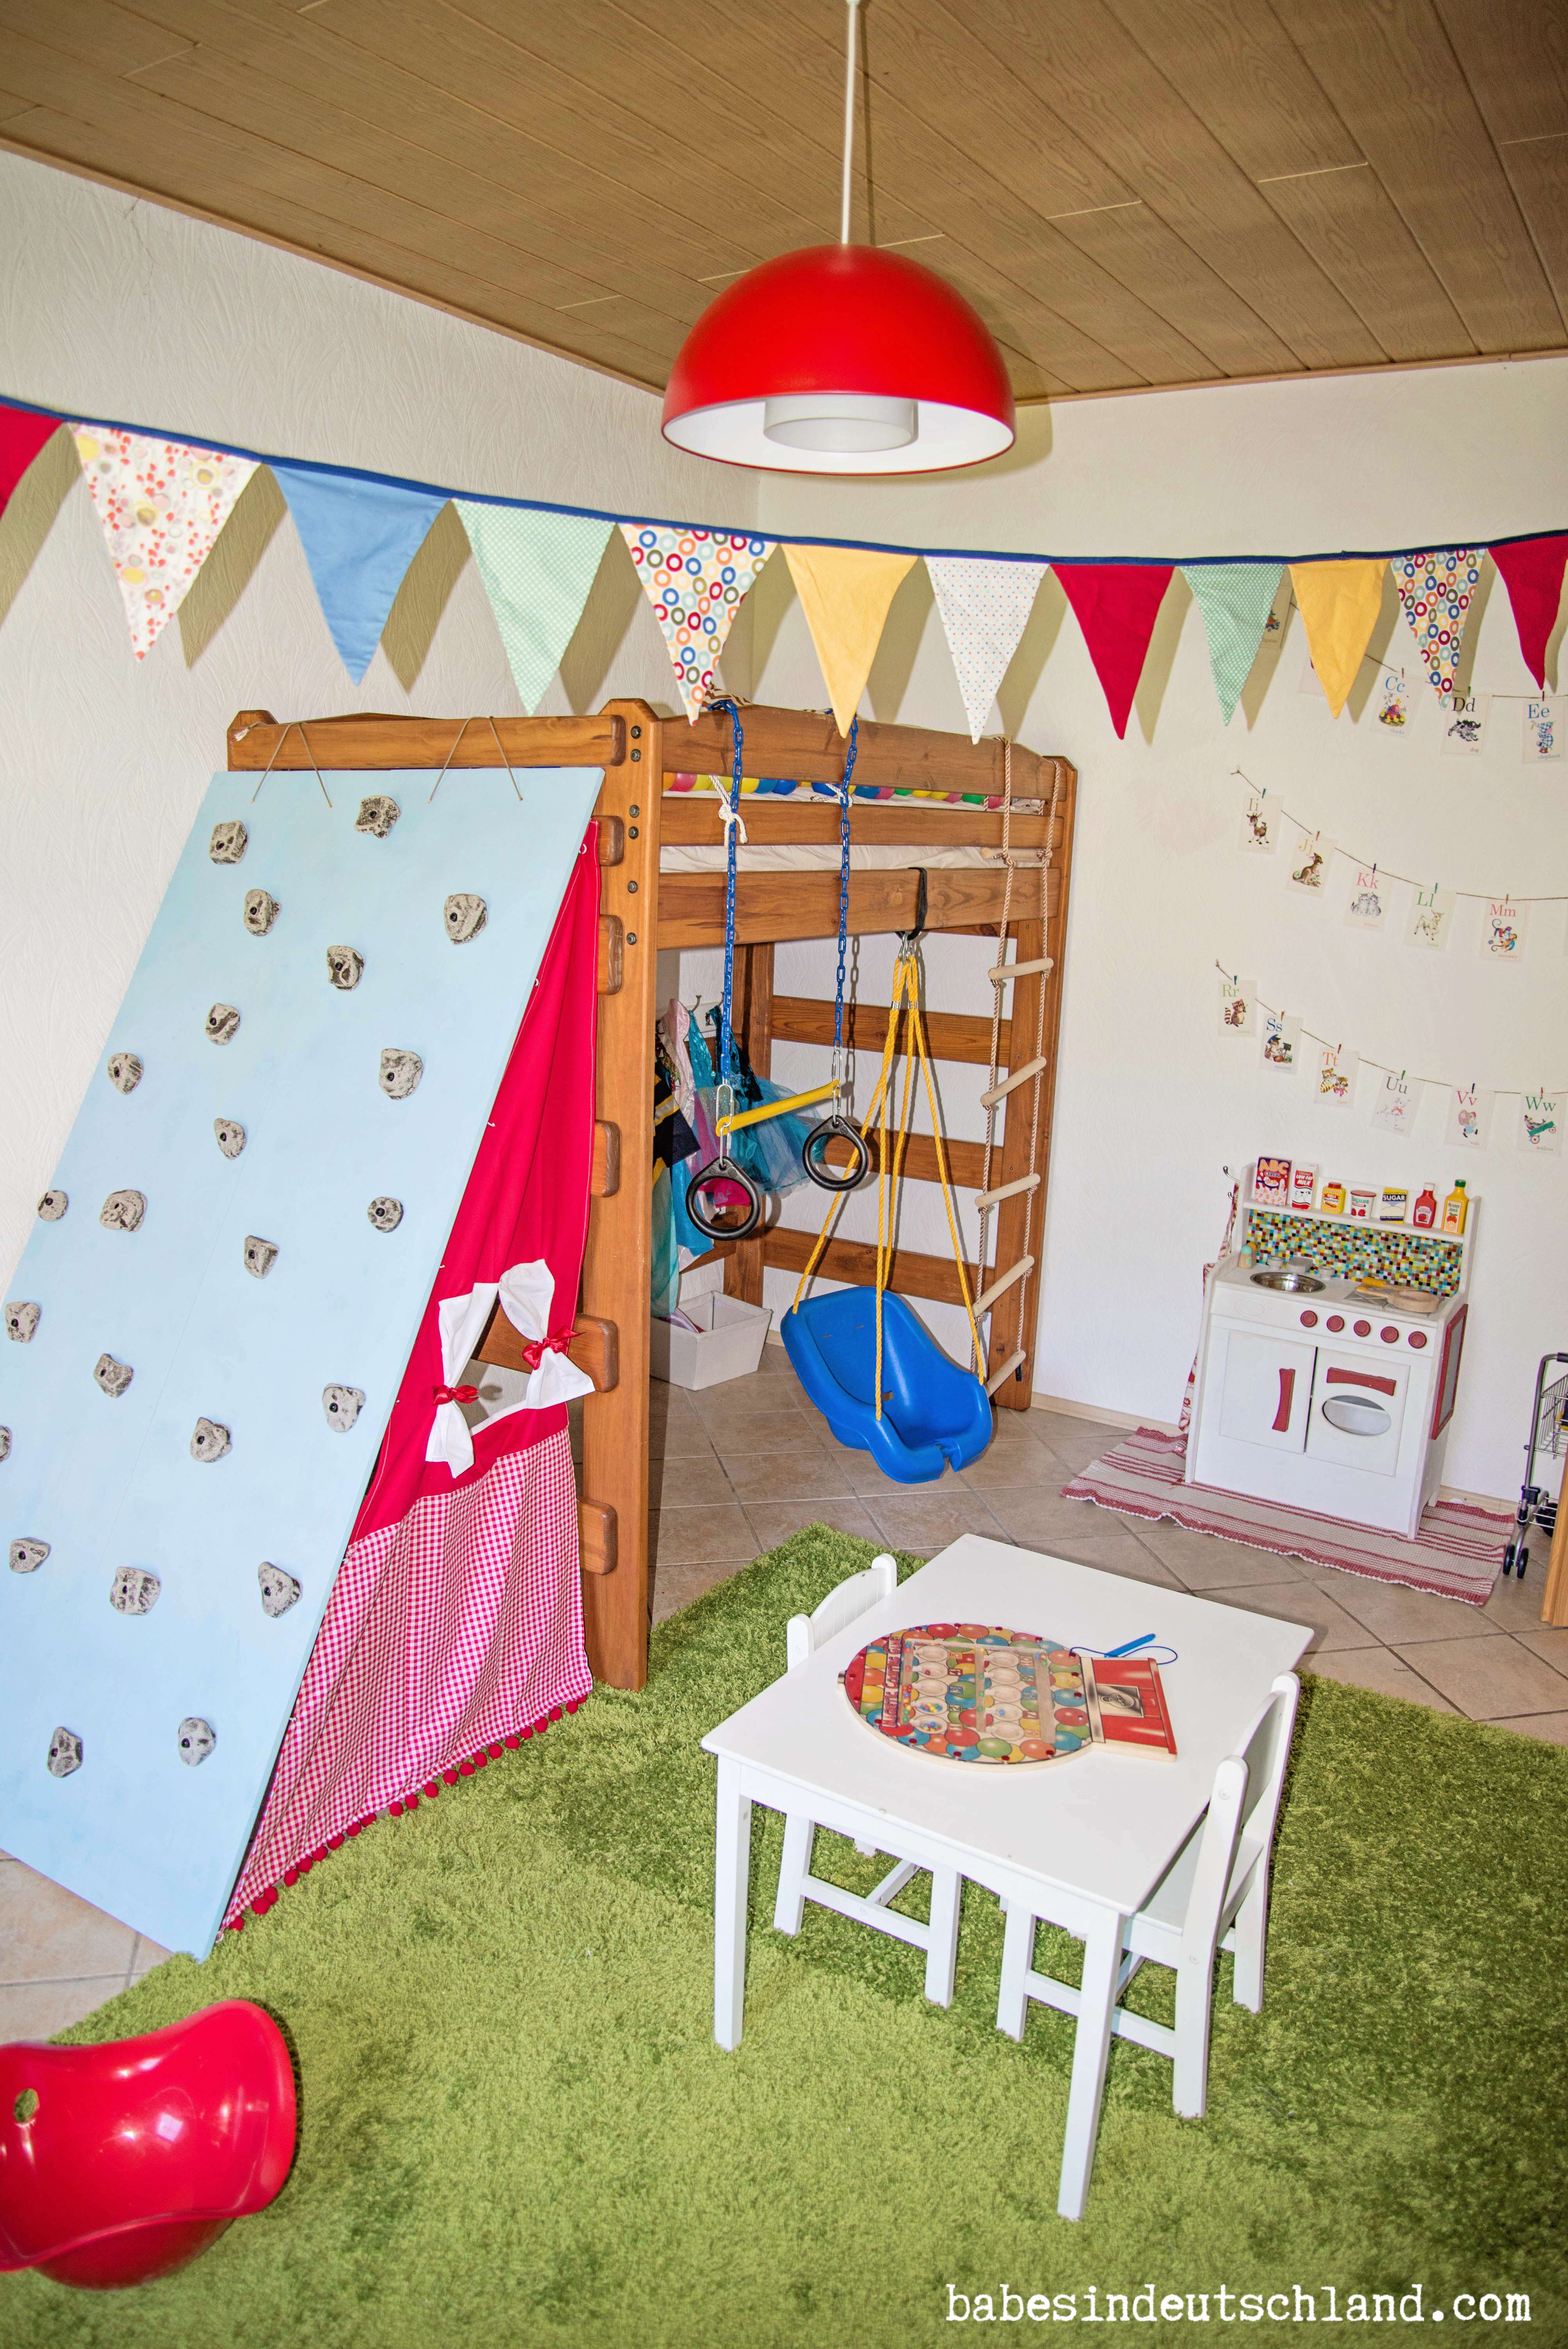 Babes in Deutschland, a whimsical woodland playroom